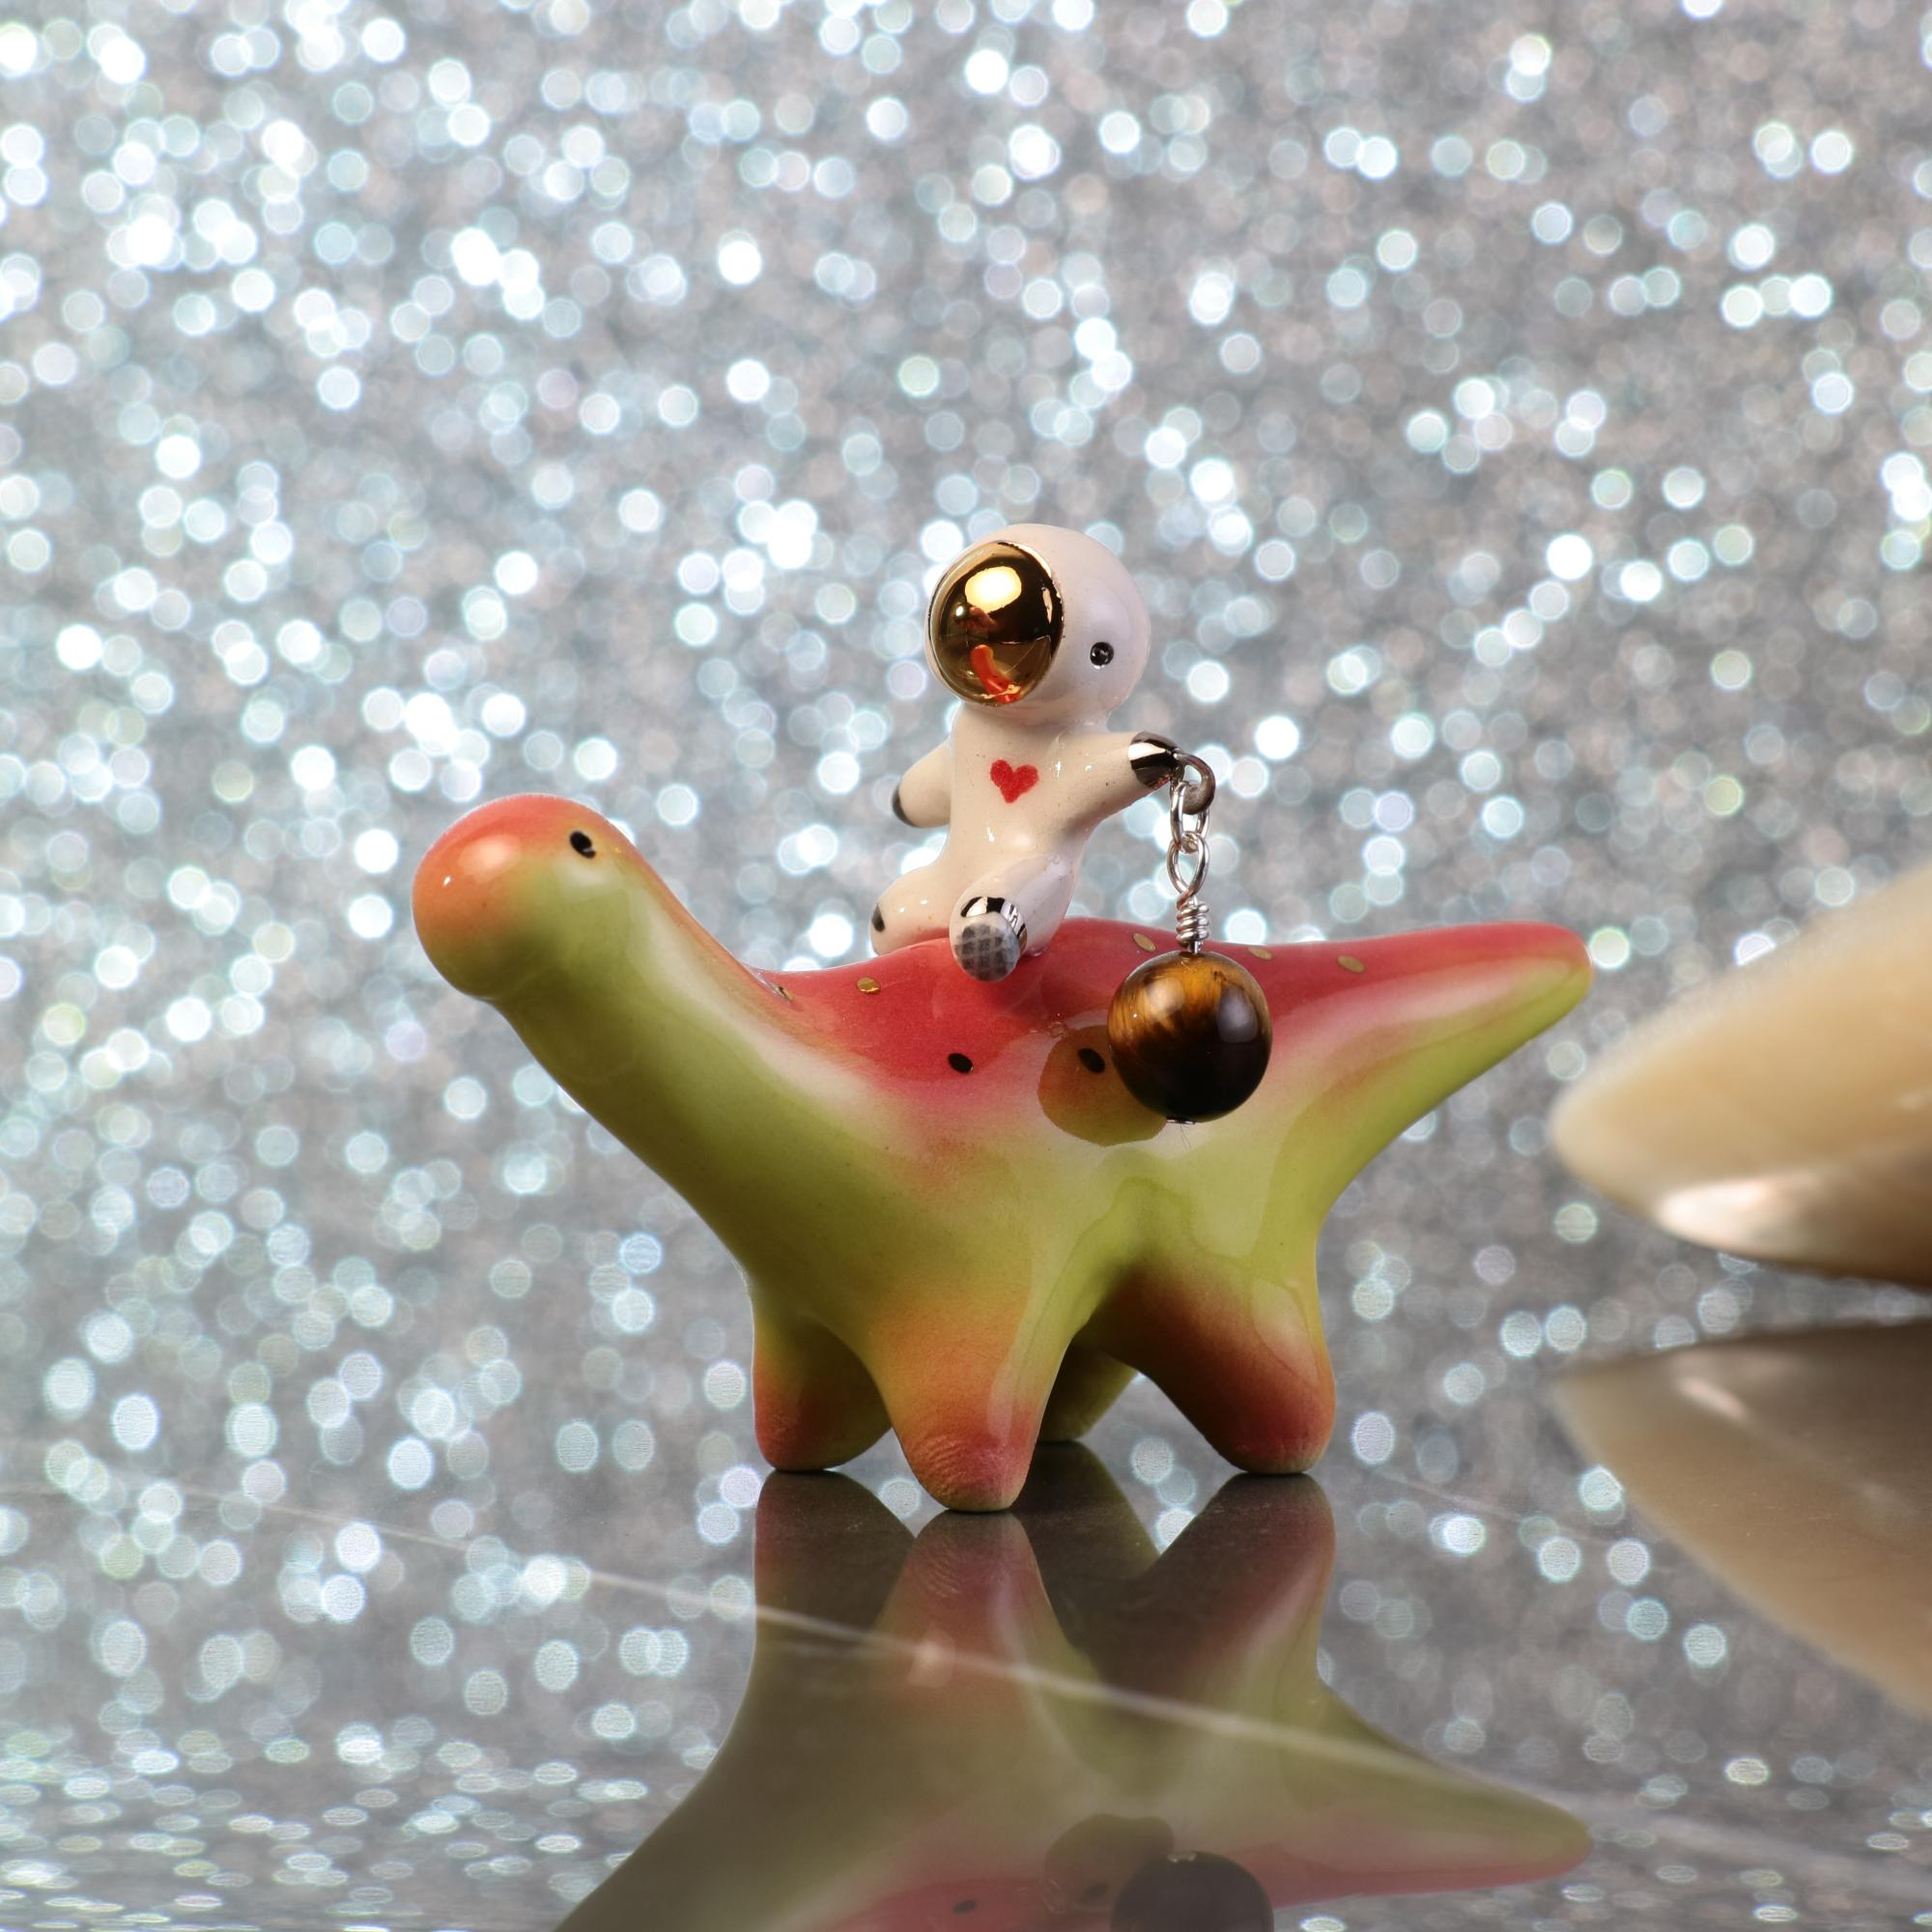 Charm Heart Astronaut Riding Dinosaur Figurine